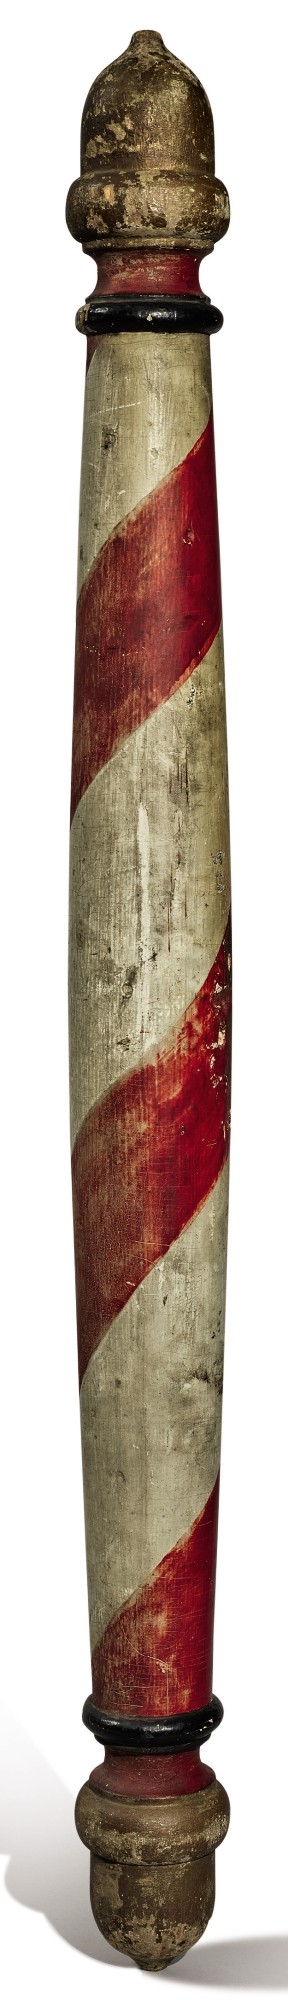 AMERICAN TURNED AND POLYCHROME PAINT-DECORATED PINE BARBER POLE, 19TH CENTURY